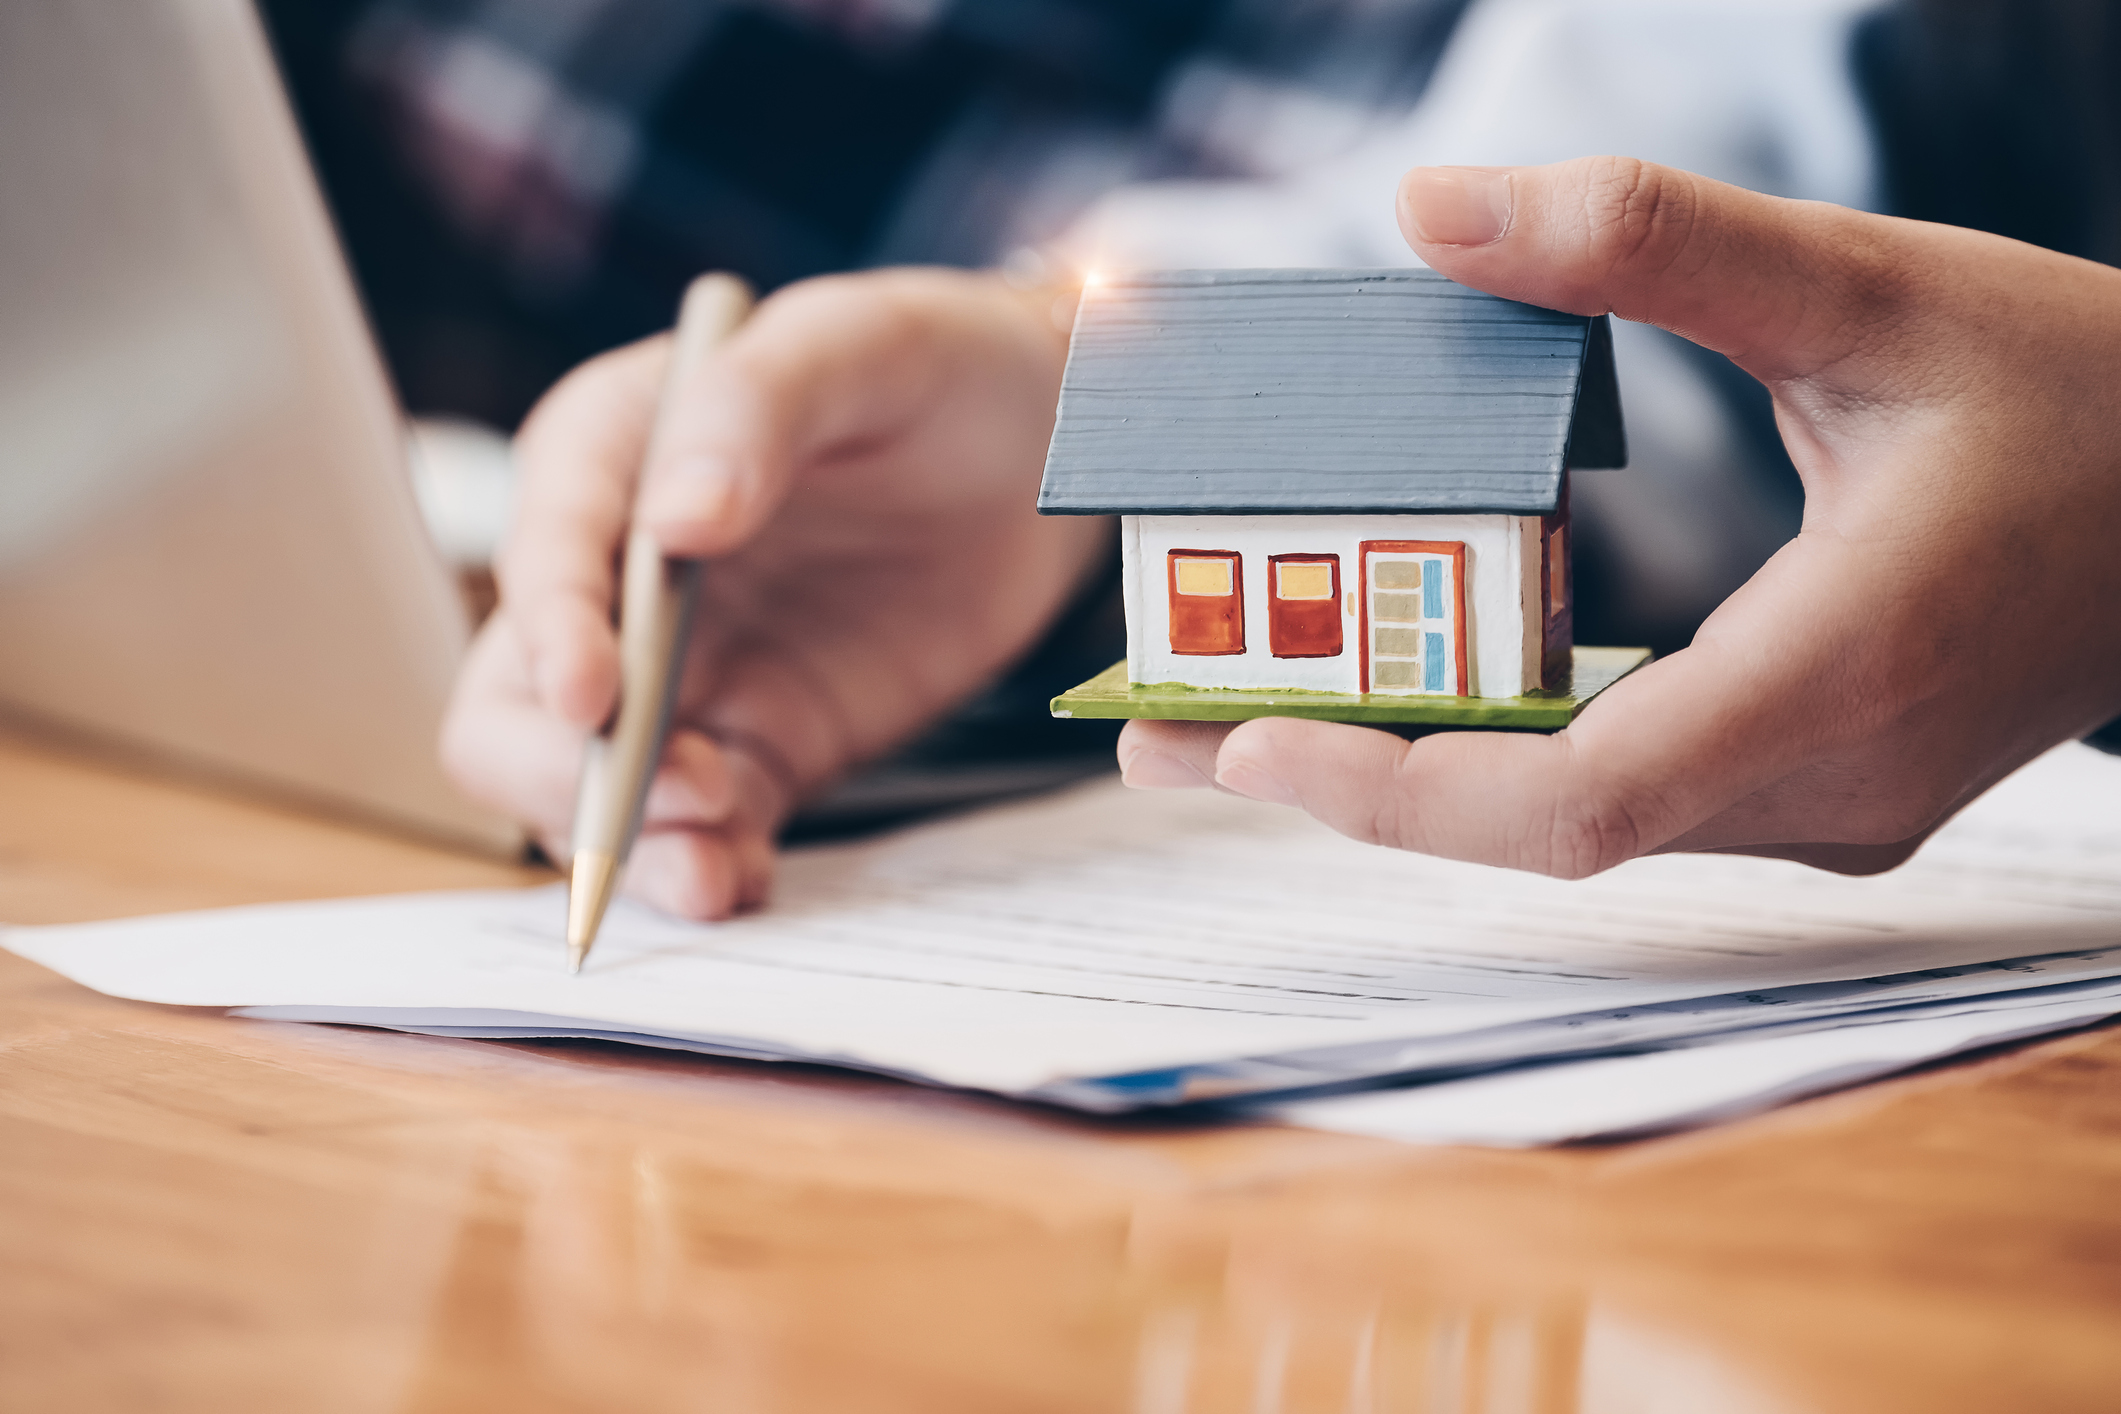 Klosinski Overstreet discusses how Georgia home sellers may not have to disclose certain issues with the house.